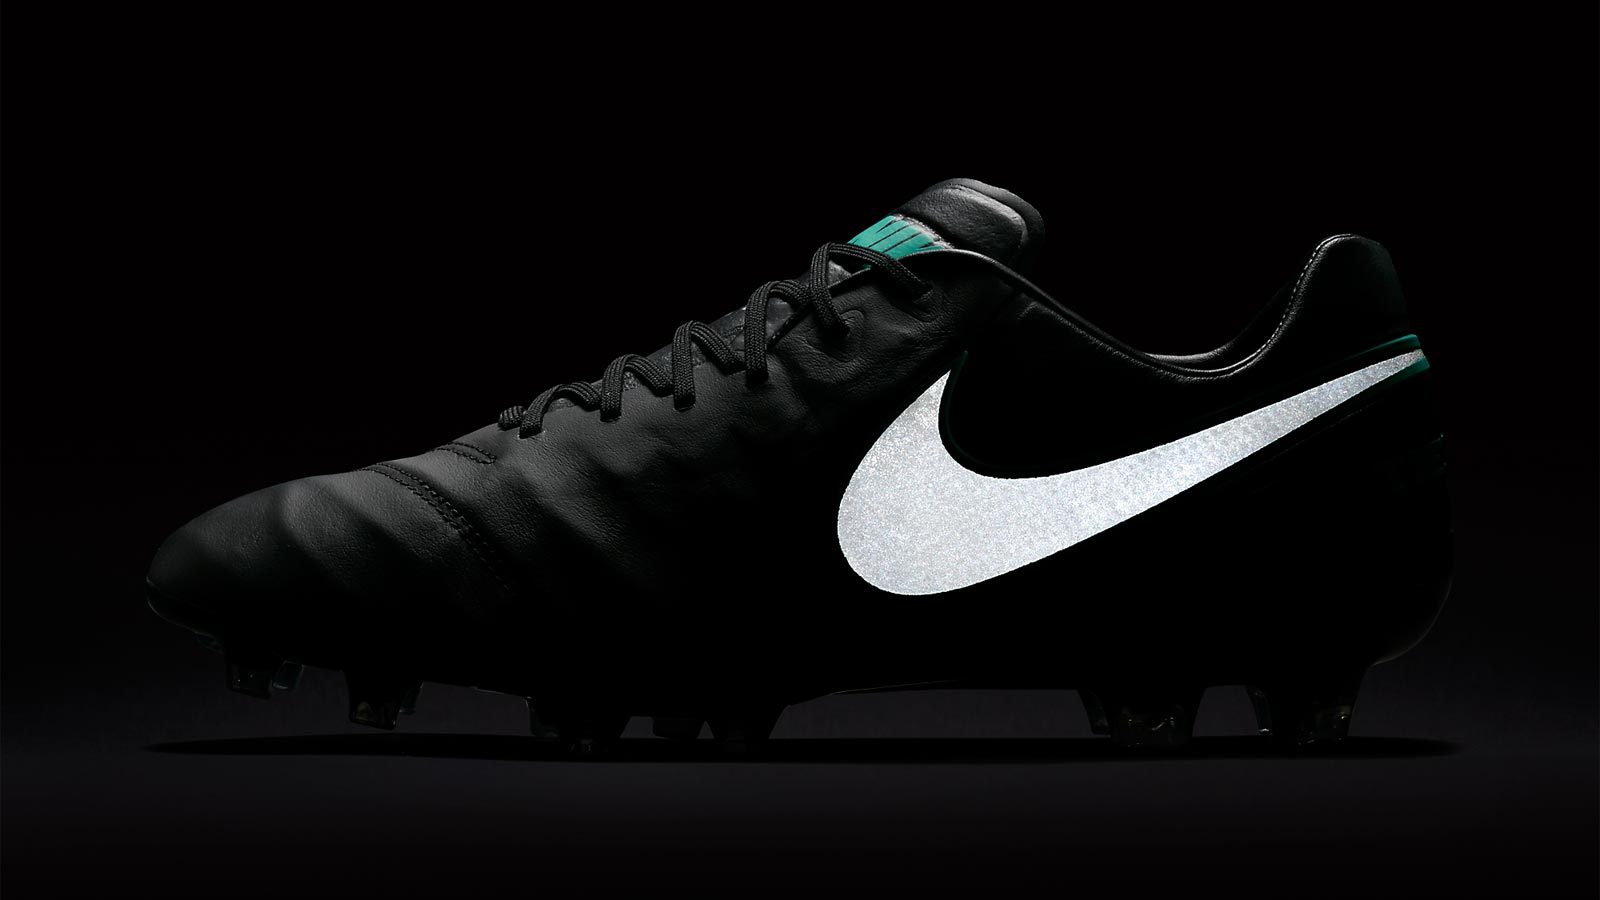 nike-tiempo-legend-6-2016-boots-black-turquvoise-side